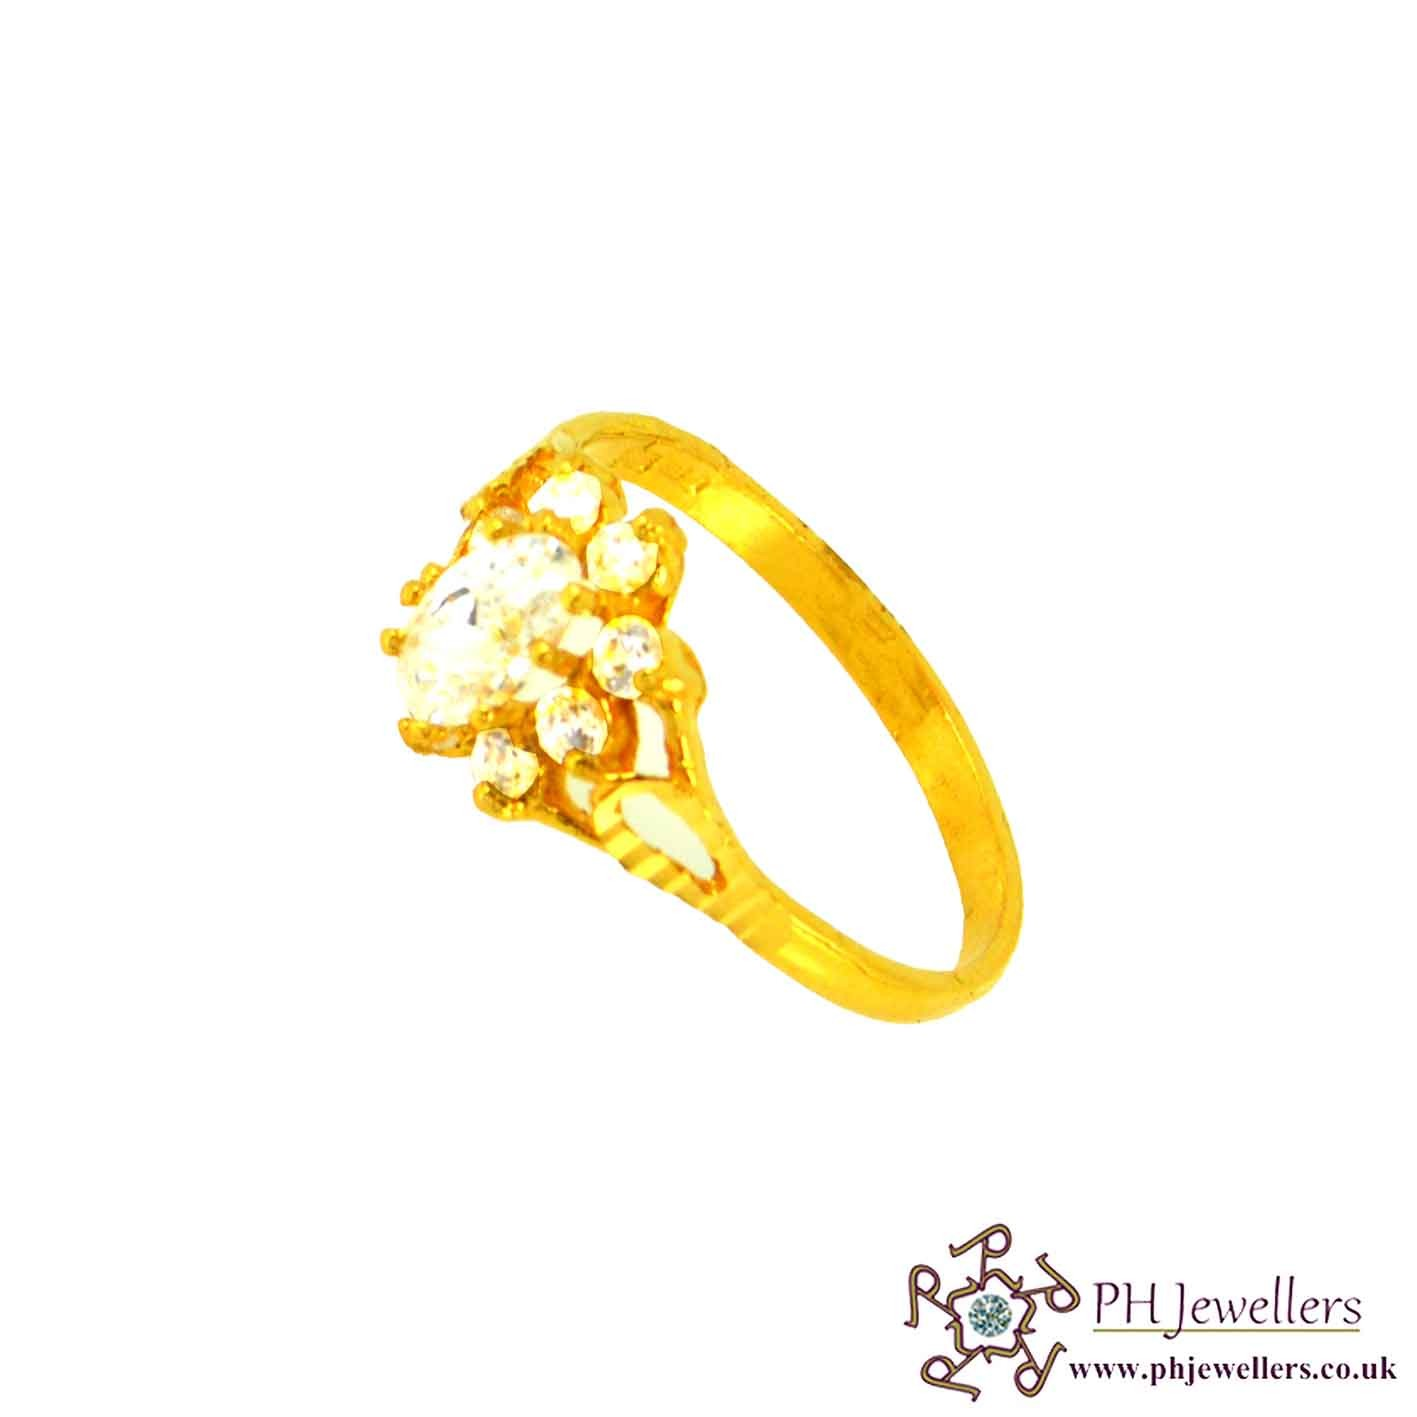 22ct 916 Hallmark Yellow Gold Cluster Oval Size M,N Ring CZ SR26